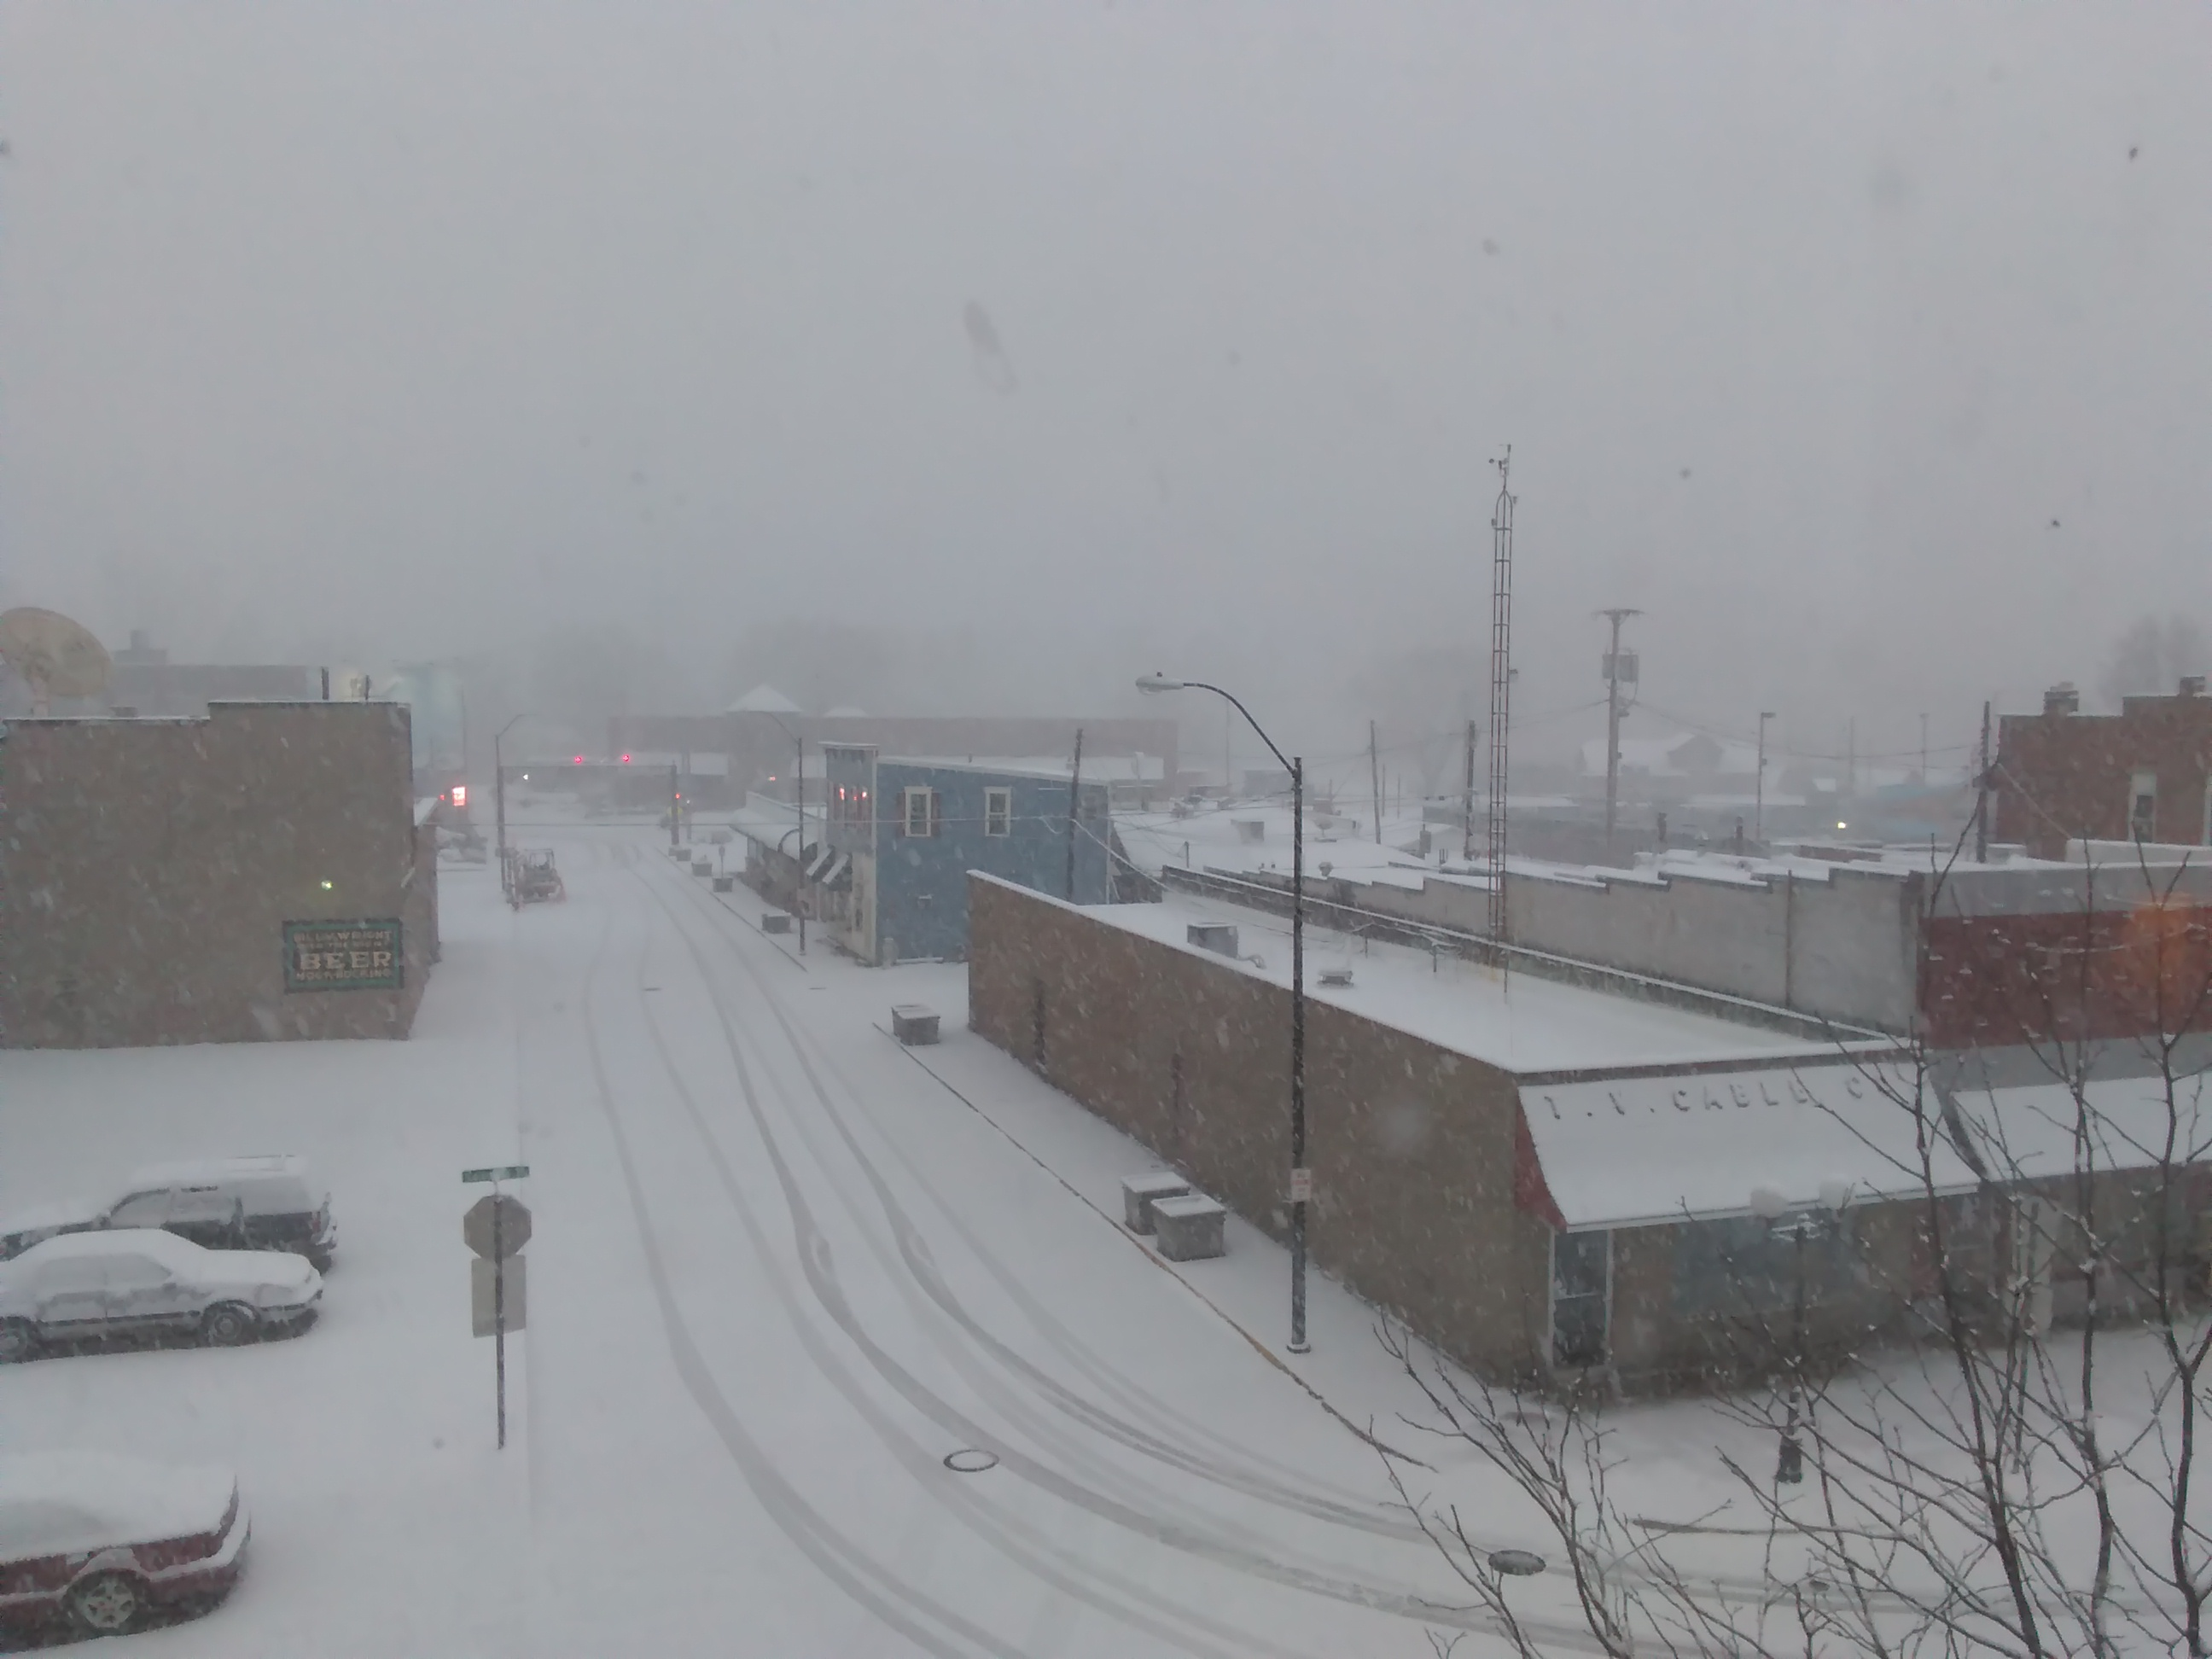 Nelsonville Snow 3-8-2018 7-14-51 AM